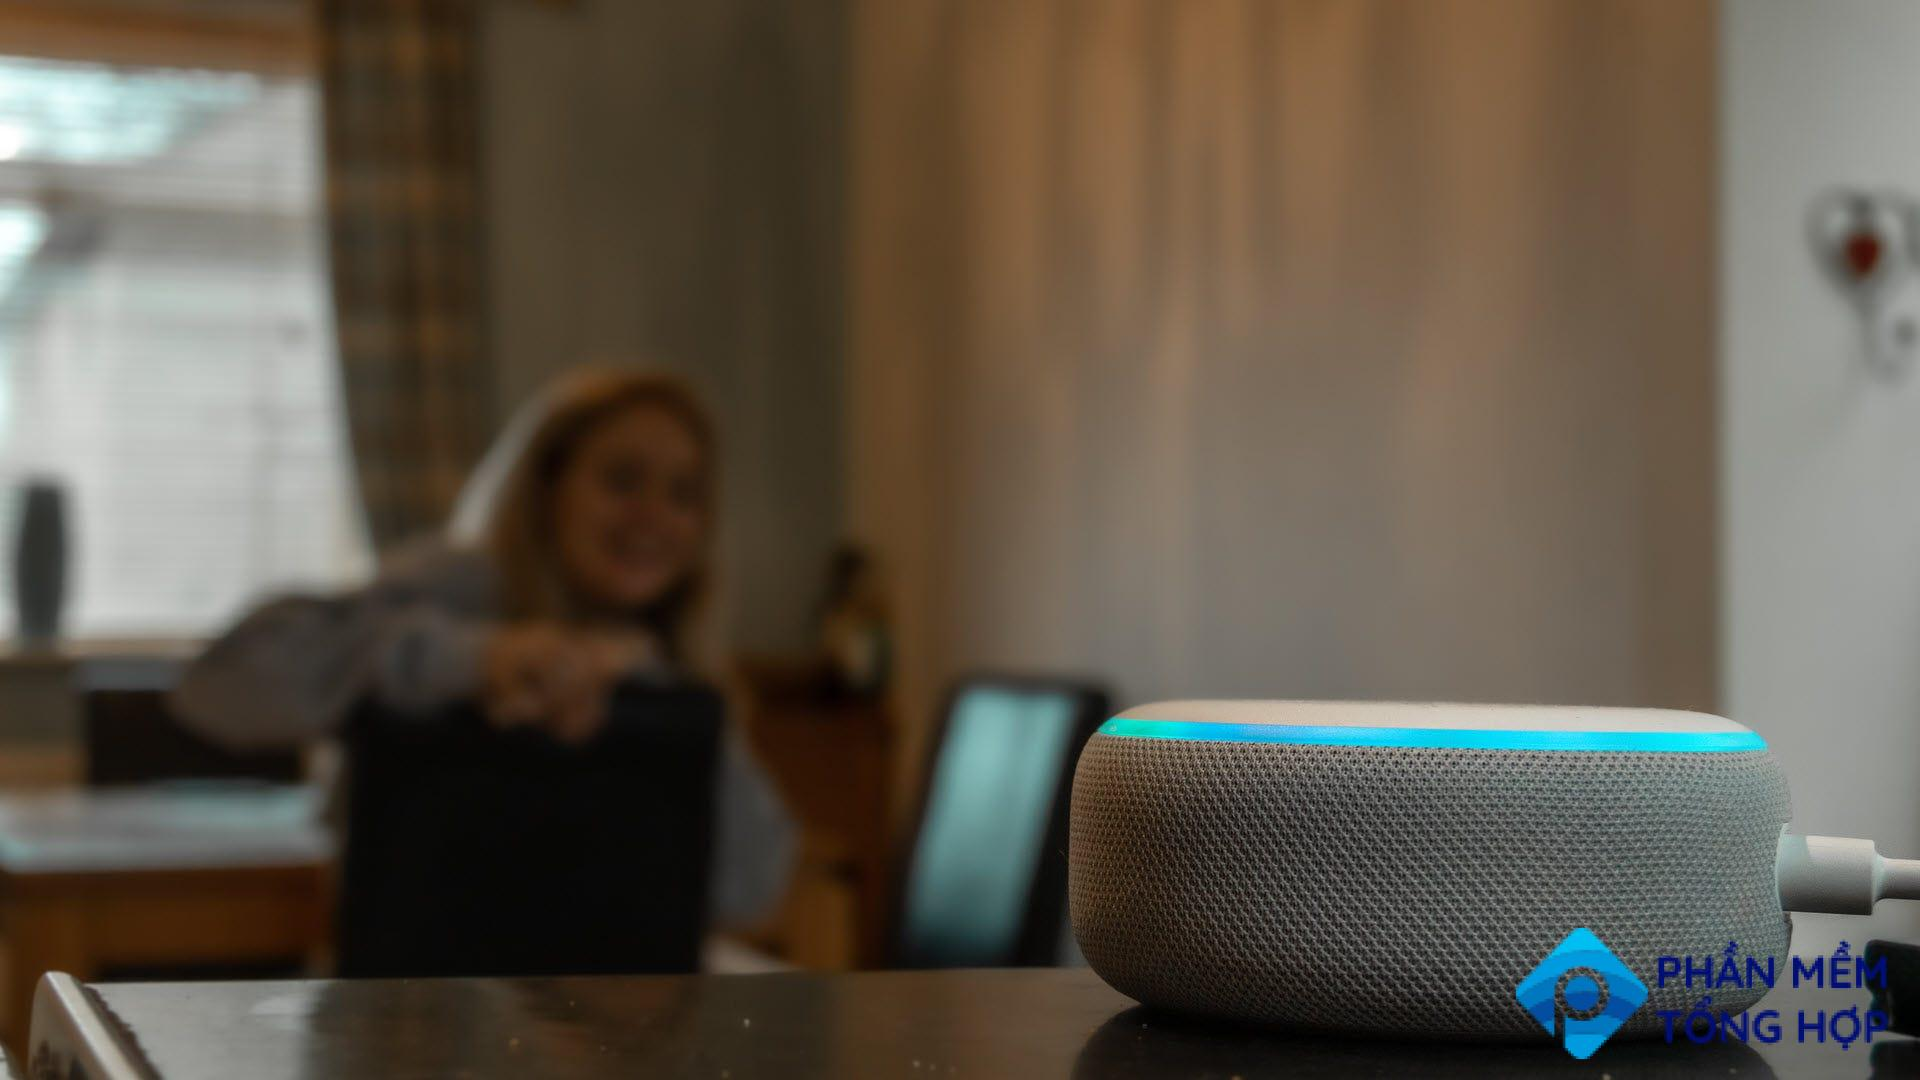 A woman talking to an Amazon Echo dot while frowning.